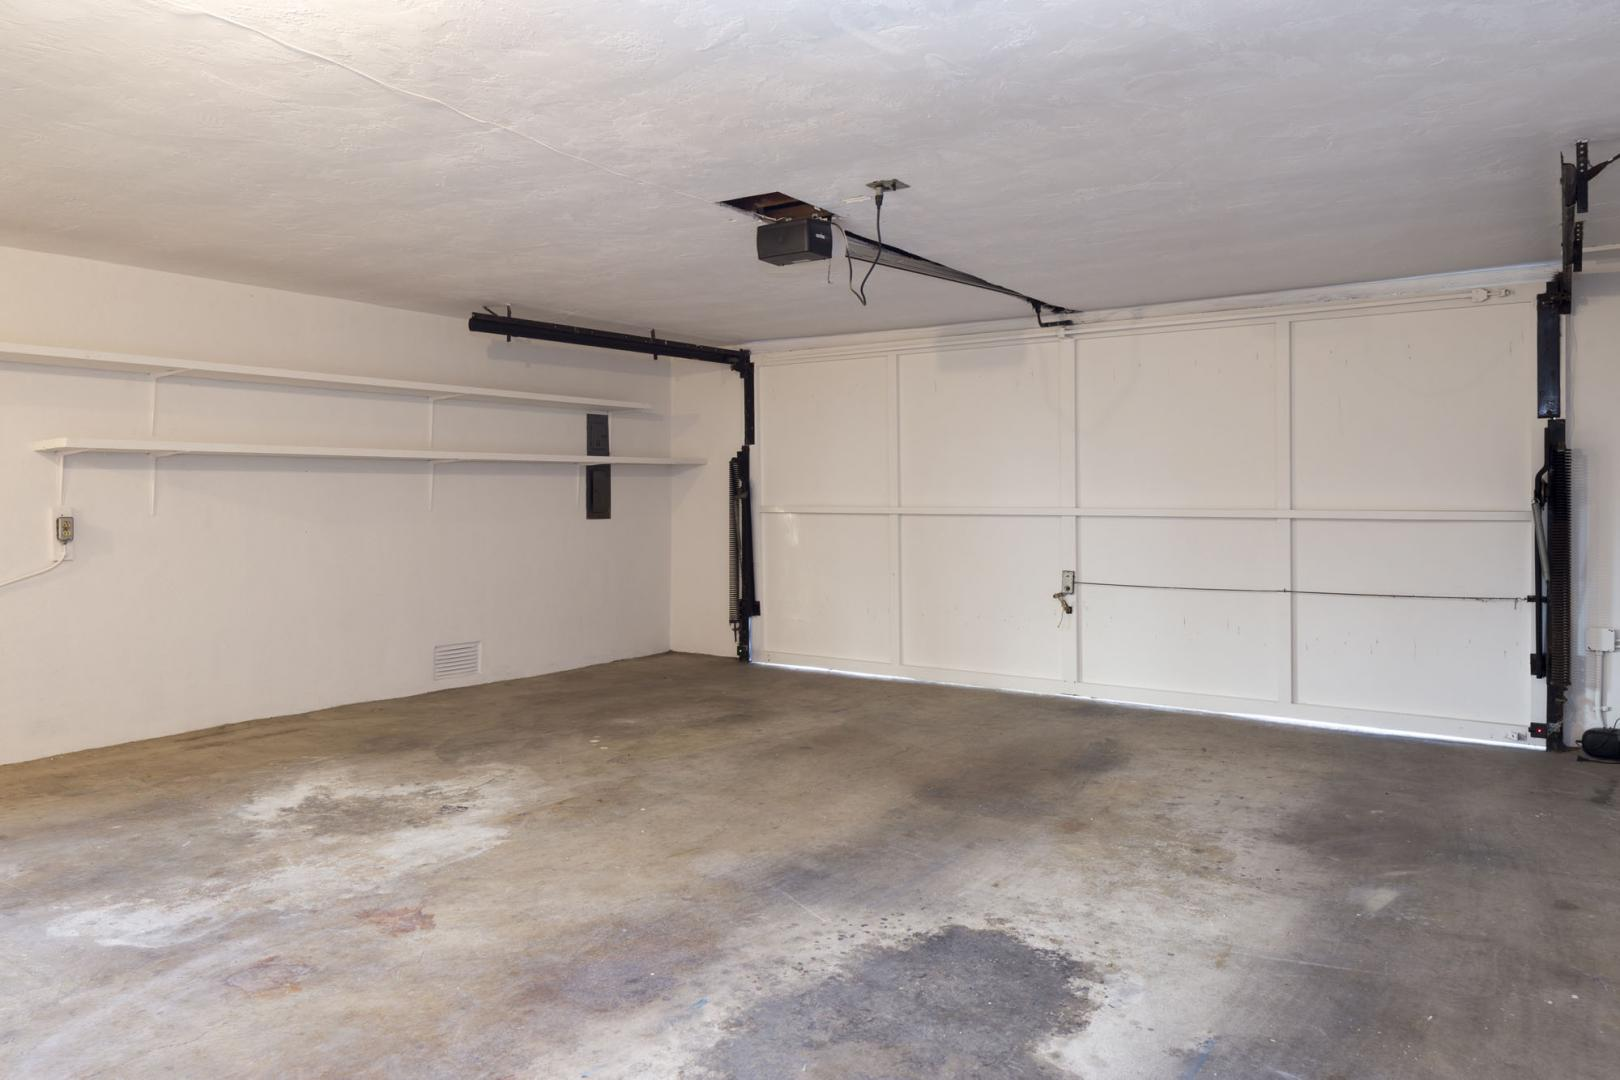 Comment protéger son garage ou sa boutique ?